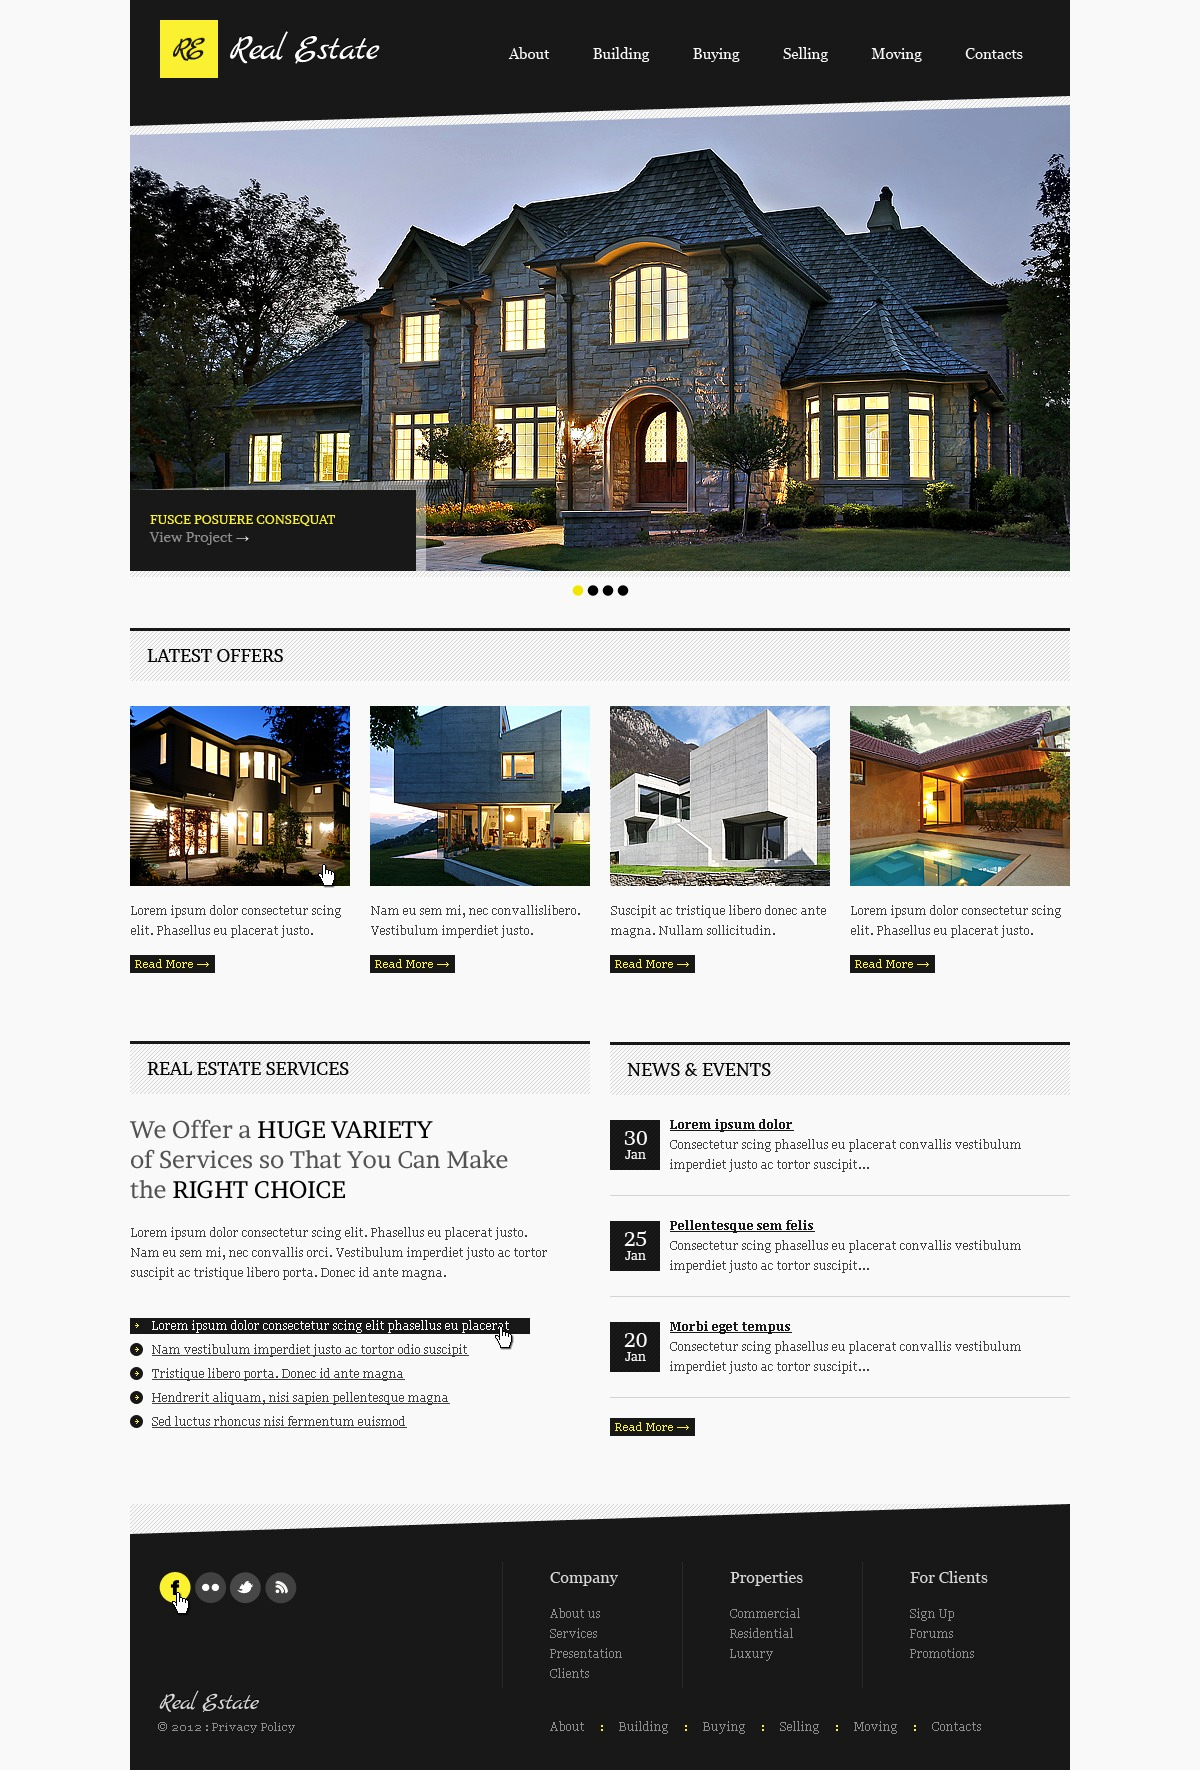 Real Estate Website Templates Luxury Real Estate Website Template